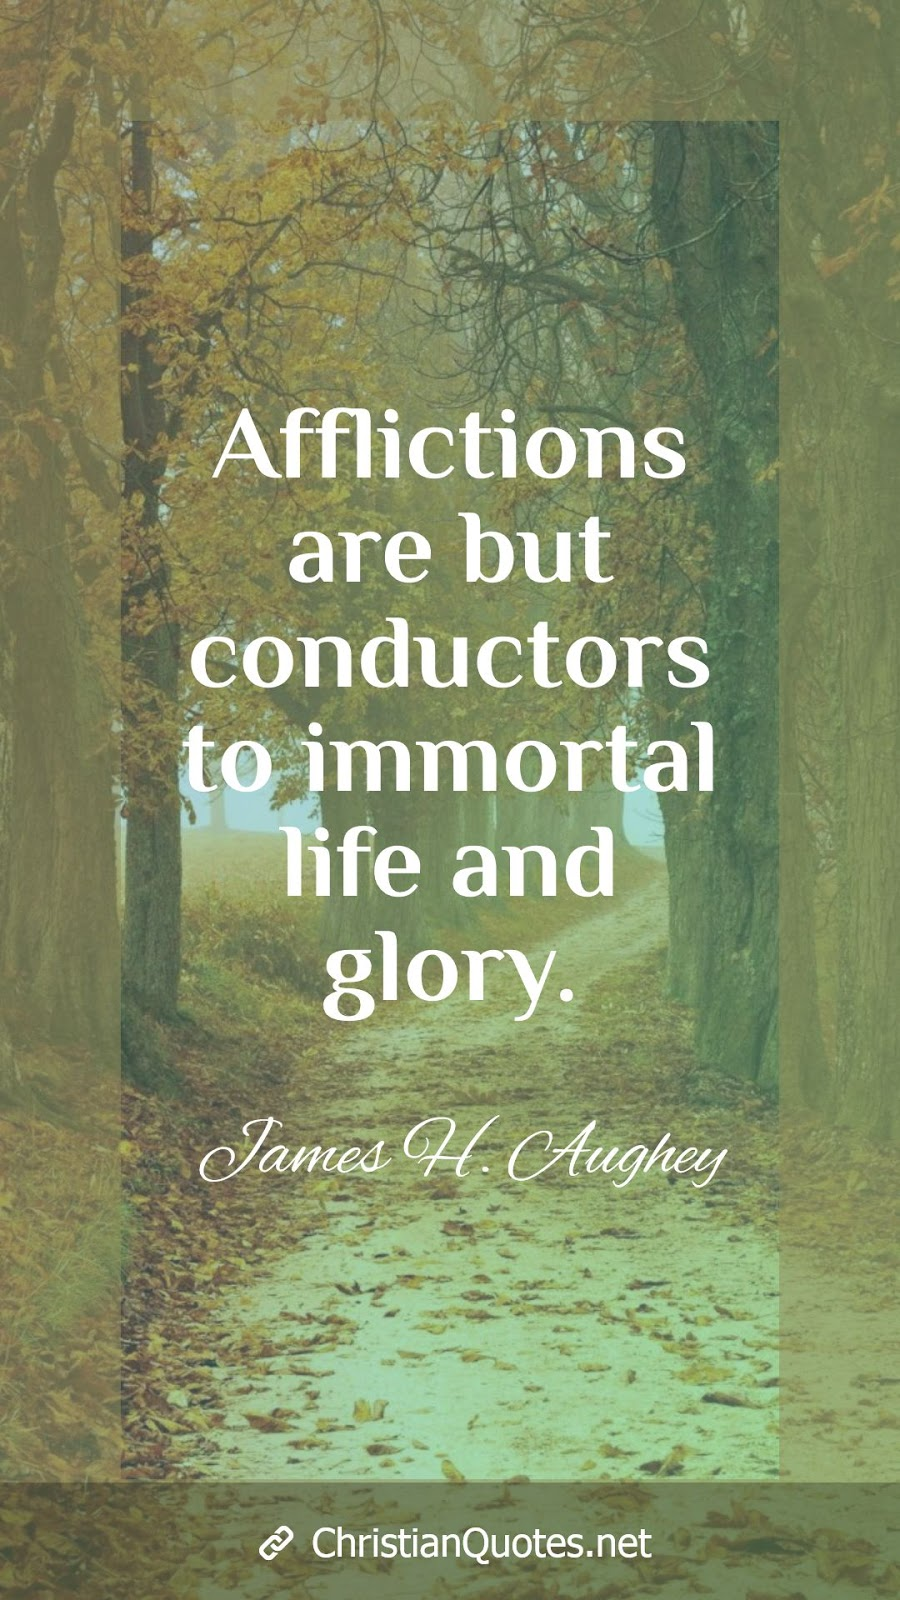 Afflictions are but conductors to immortal life and glory.